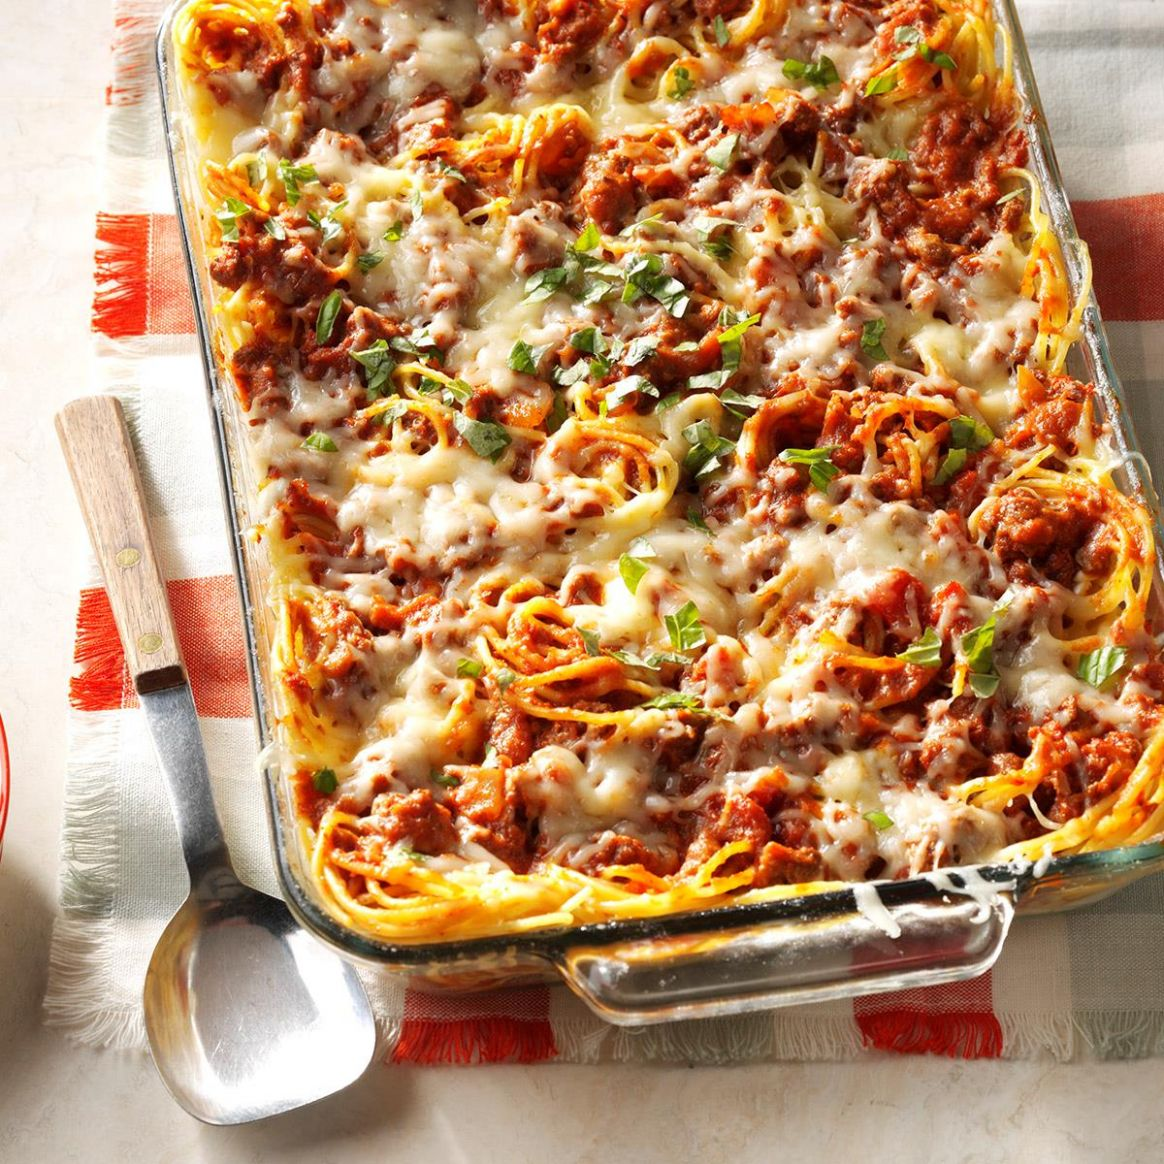 8 Easy Baked Dinners to Make Tonight | Taste of Home - Easy Recipes In Oven